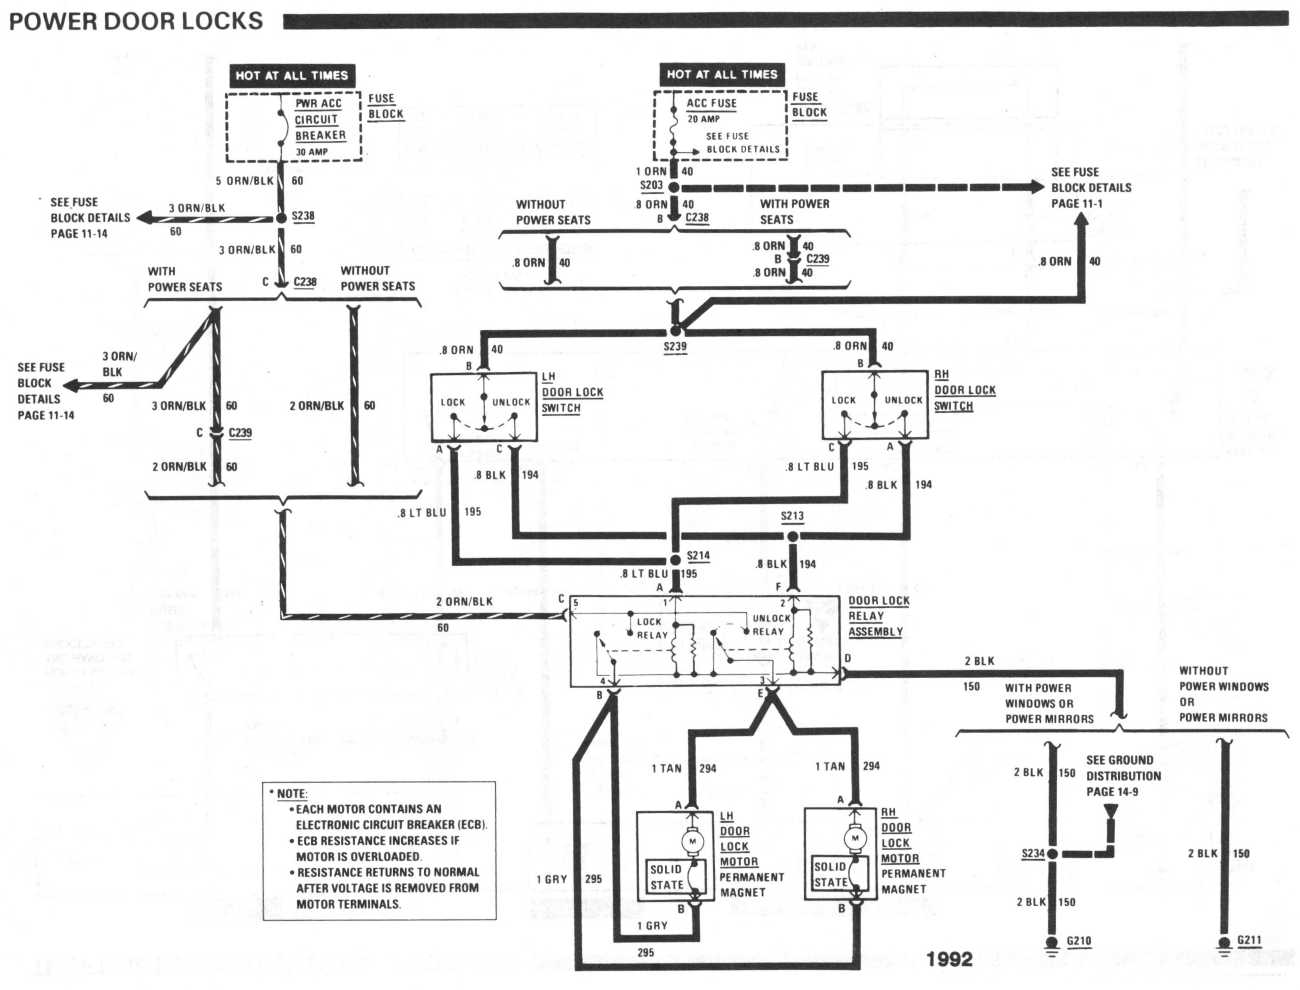 1978 Trans Am Wiring Diagram Power Windows Wire Data Schema Ignition Camaro Electrical House Door Locks Not Working At All Third Generation F 1970 Firebird